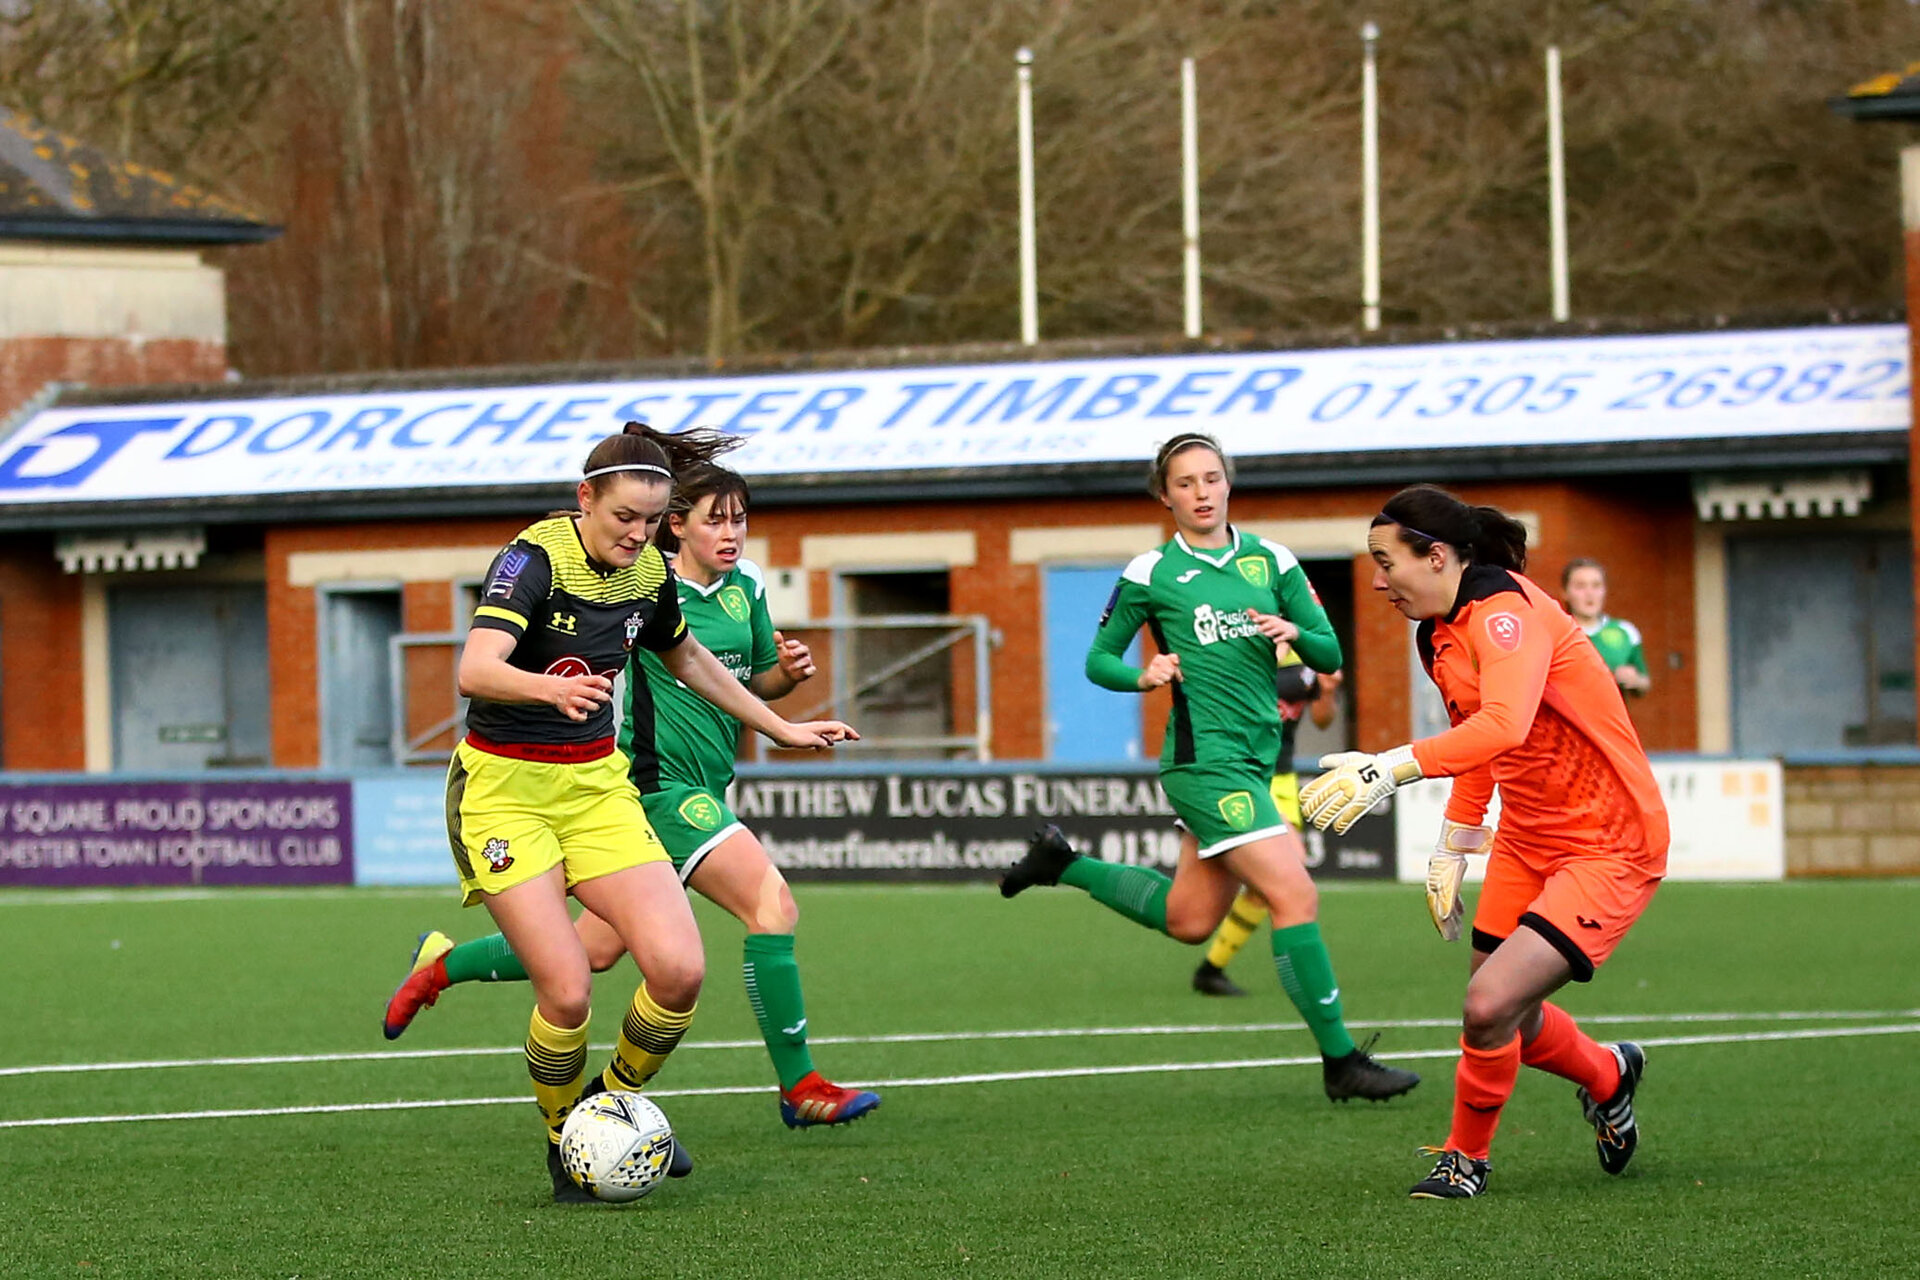 YEOVIL, ENGLAND - DECEMBER 01: Ella Pusey shot during the FA Cup, second round, at The Avenue between Yeovil and Southampton Women on December 01 2019, Yeovil, England. (Photo by Isabelle Field/Southampton FC via Getty Images)